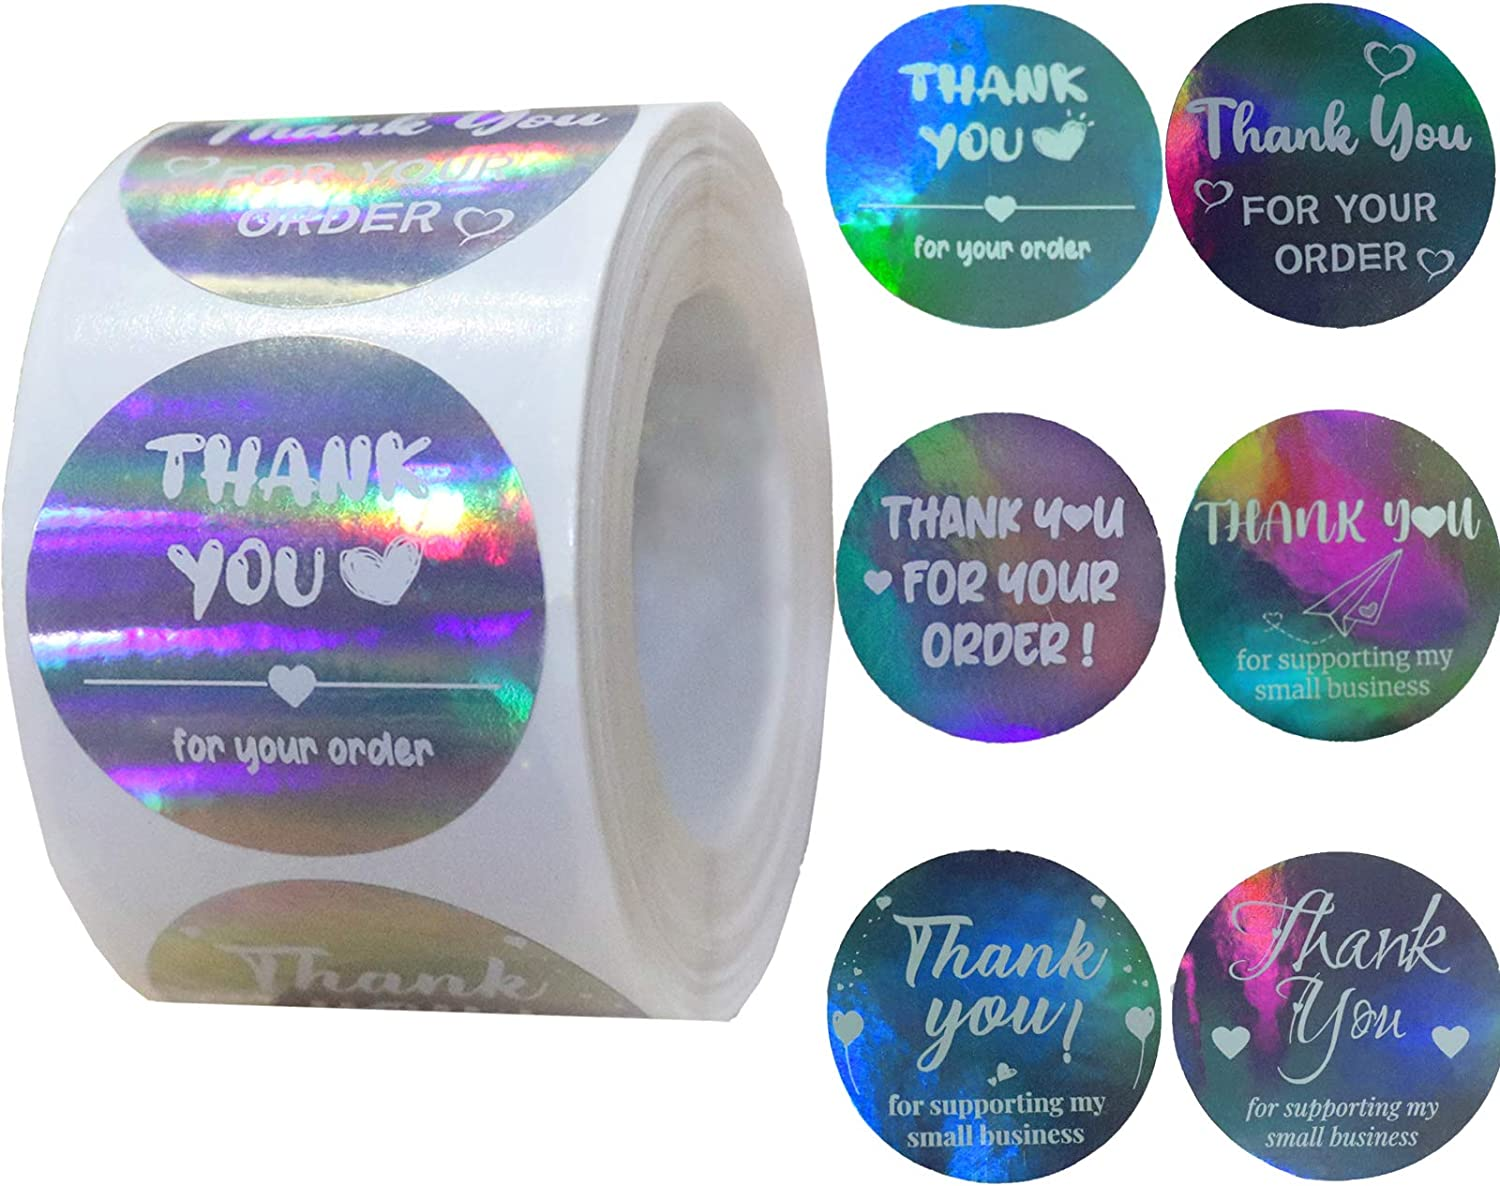 Thank You Stickers Small Business Commercial Stickers 1.5 Inch Thank You Tags 500 Pcs Silver Flash Adhesive Business Labels for Envelope, Gift Bags, Boxes, Decoration - Lnichot (1.5 Inch White)